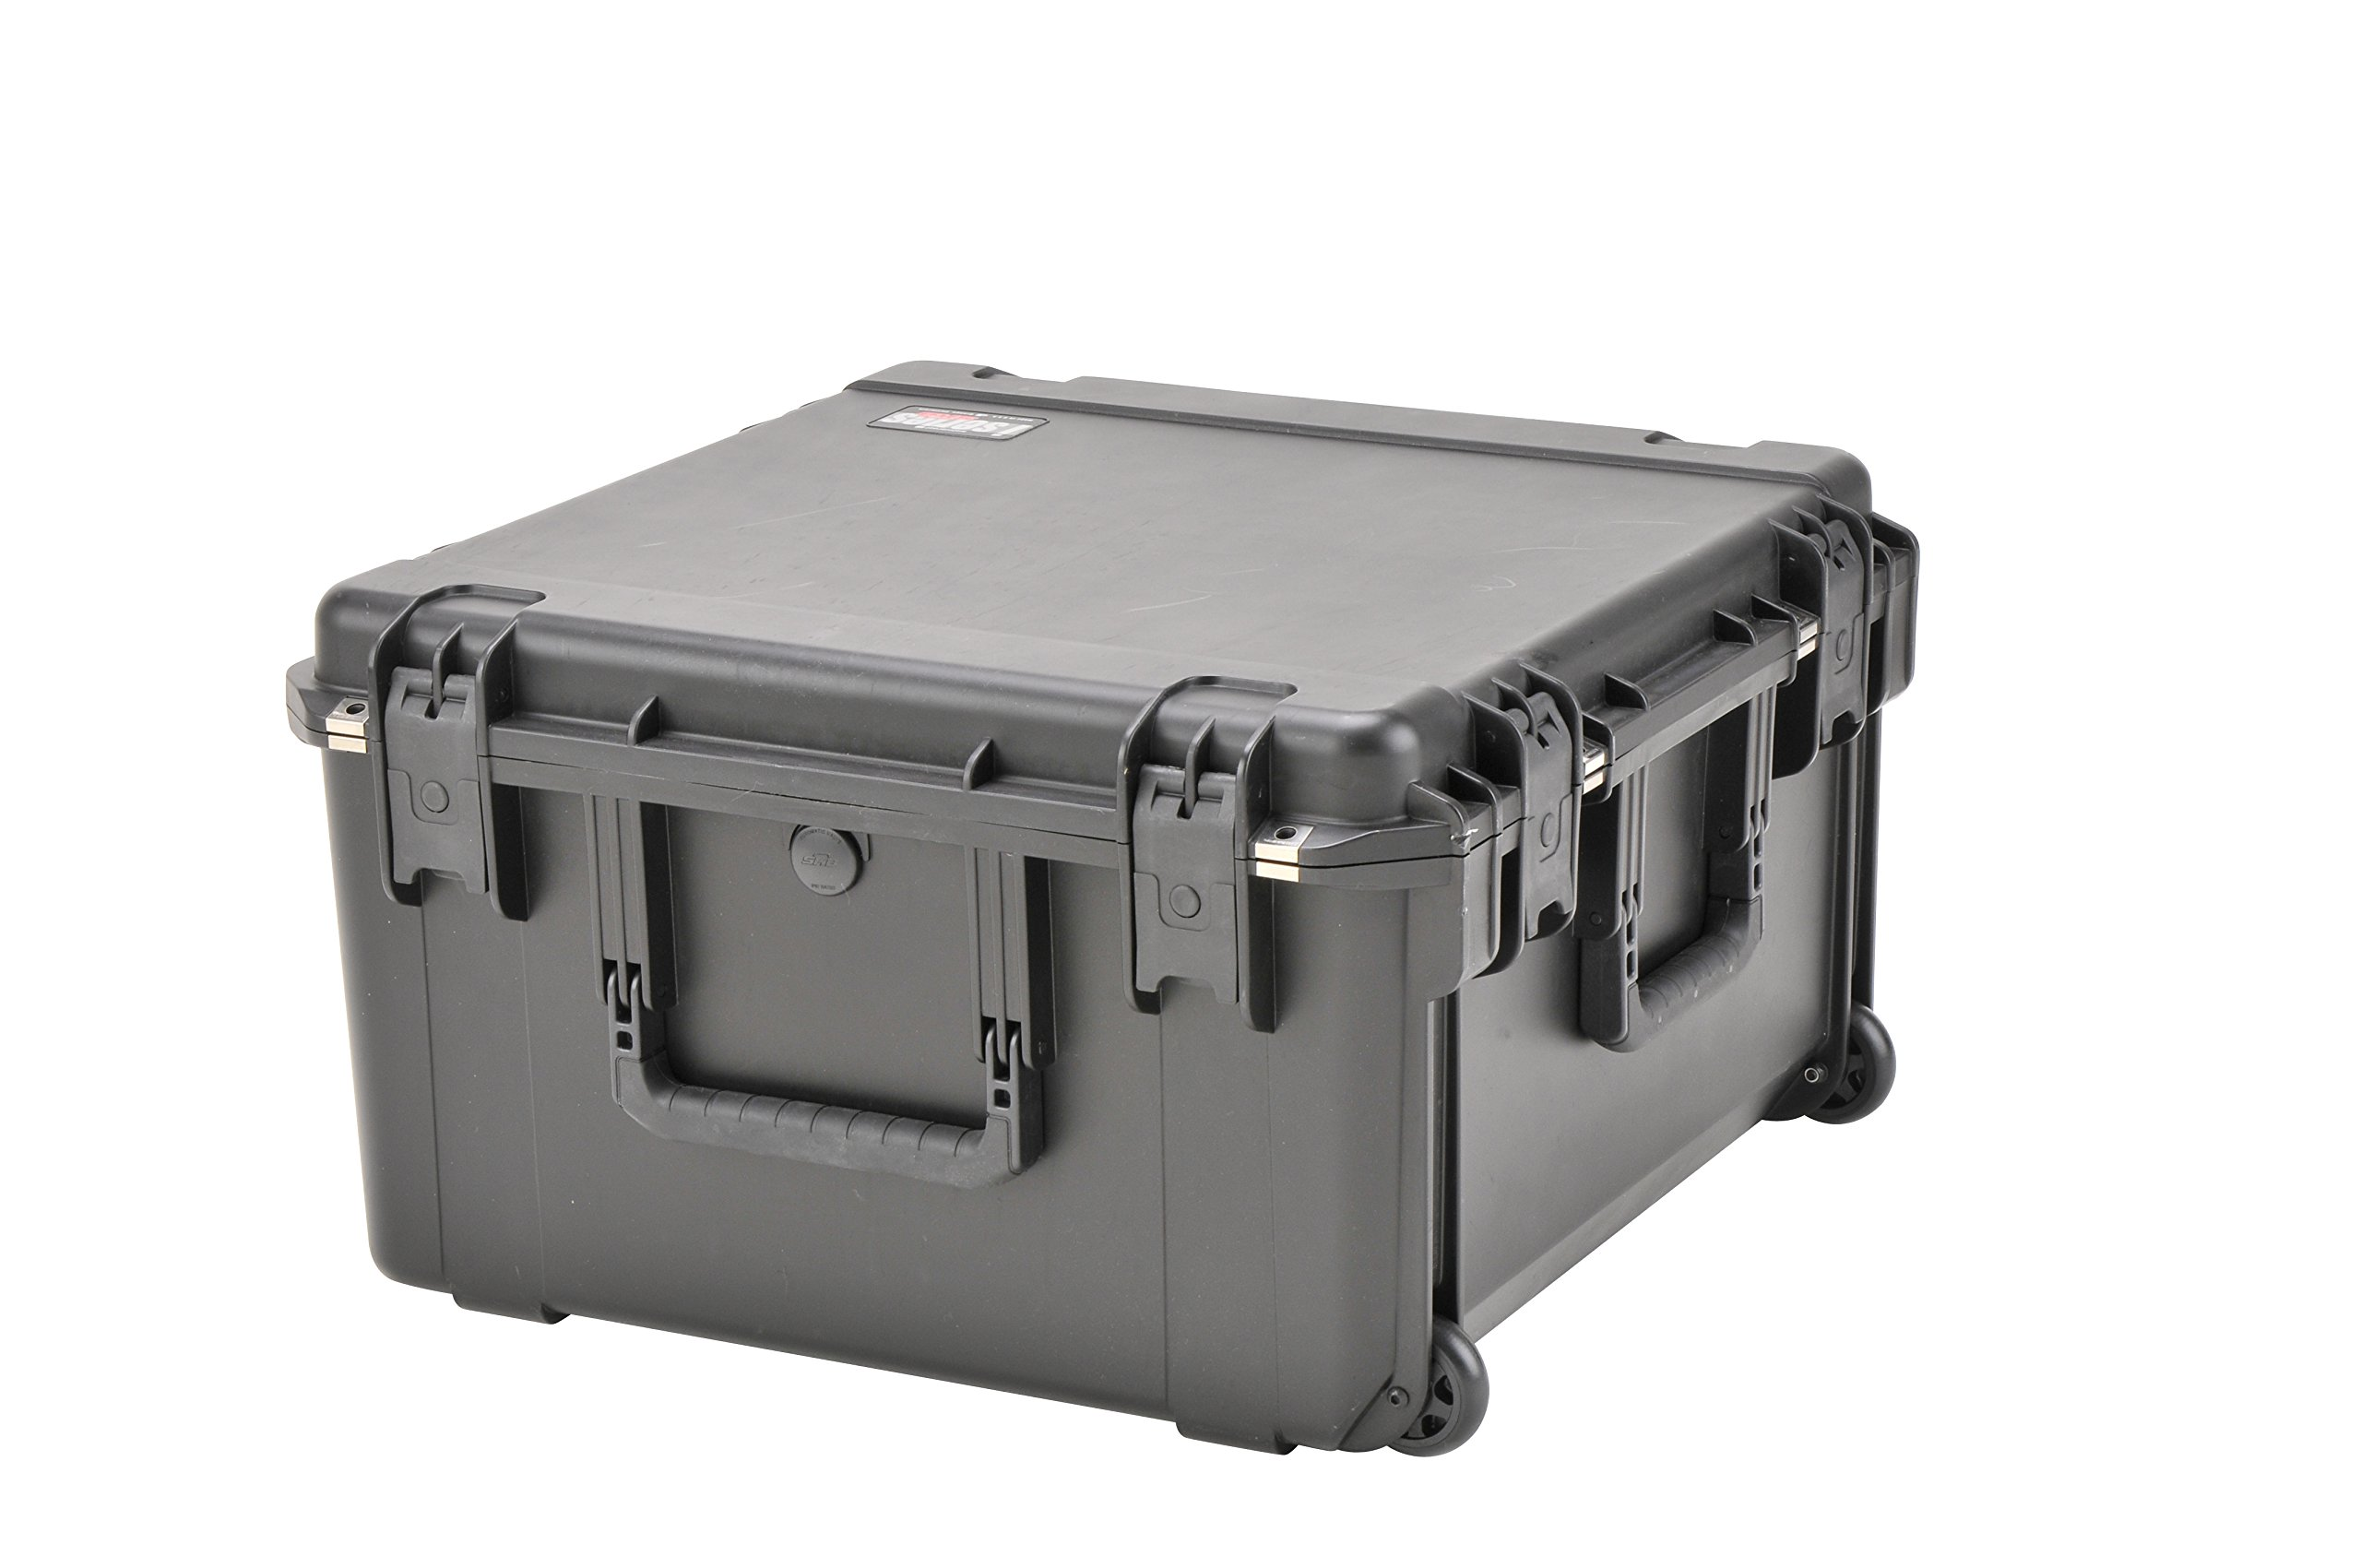 SKB Injection Molded Water-tight Case 22 x 22 x 12 Inches with wheels (3I-2222-12BE)